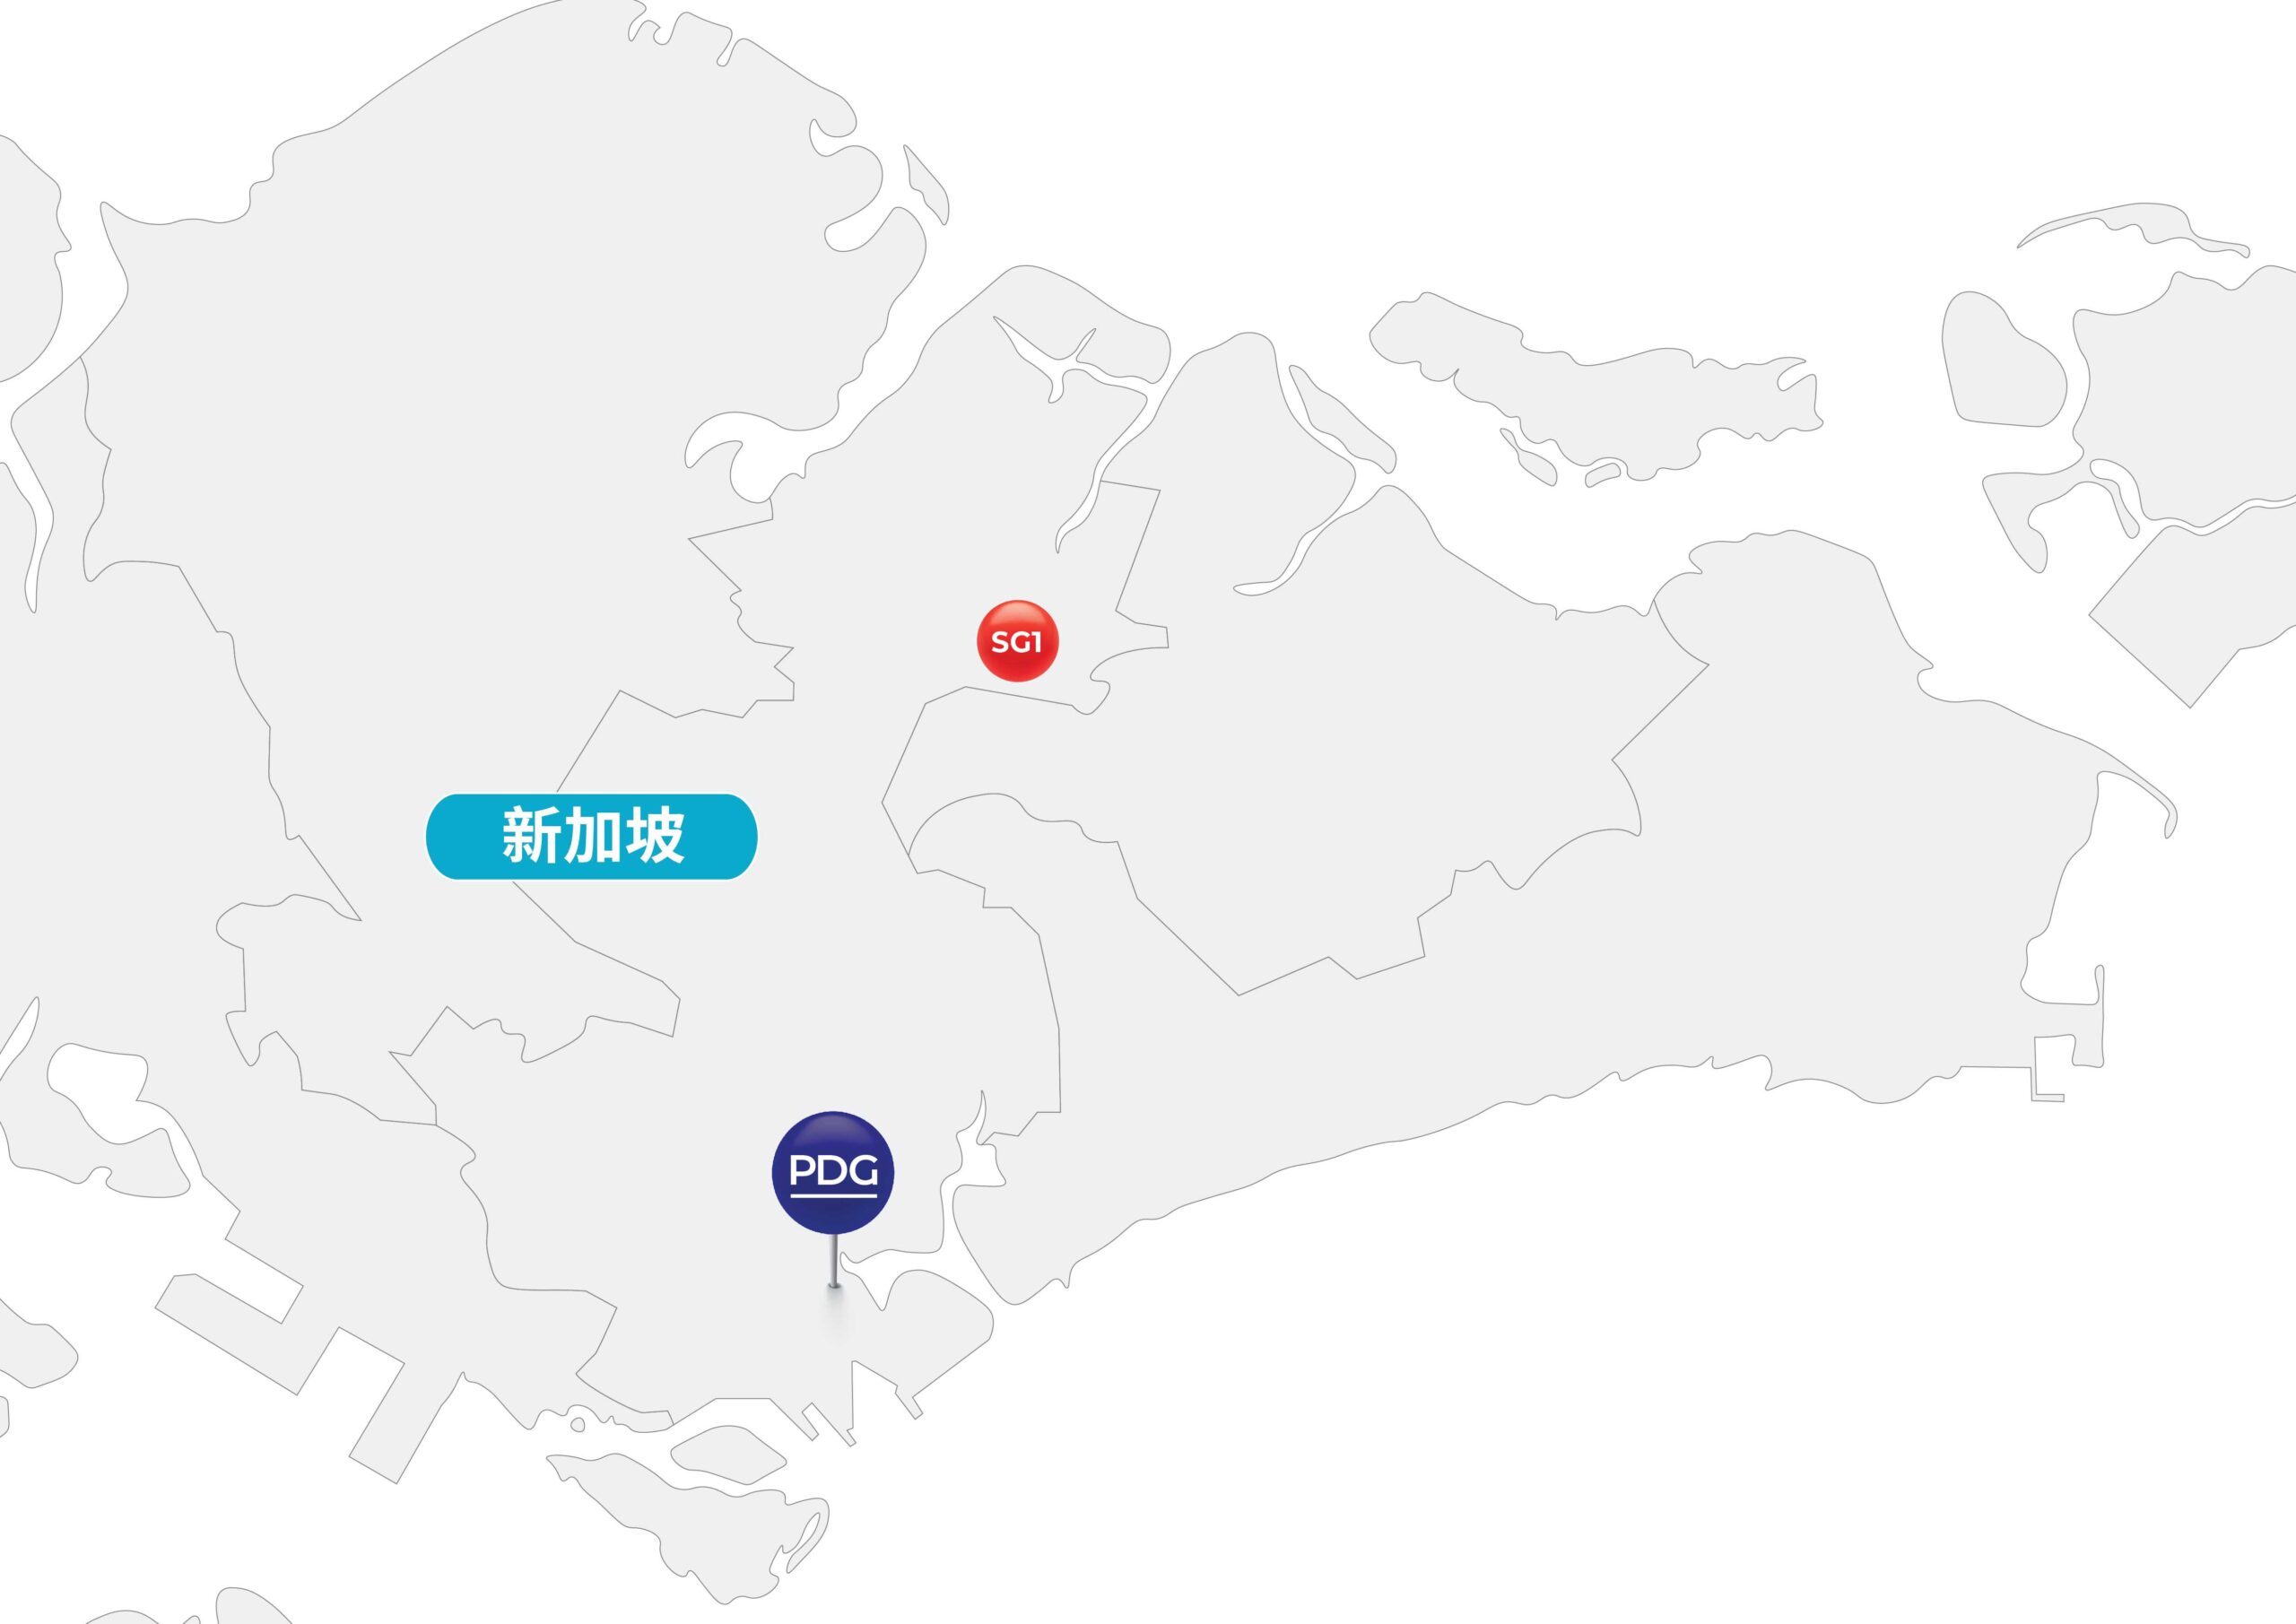 Map of Singapore and PDG Presence